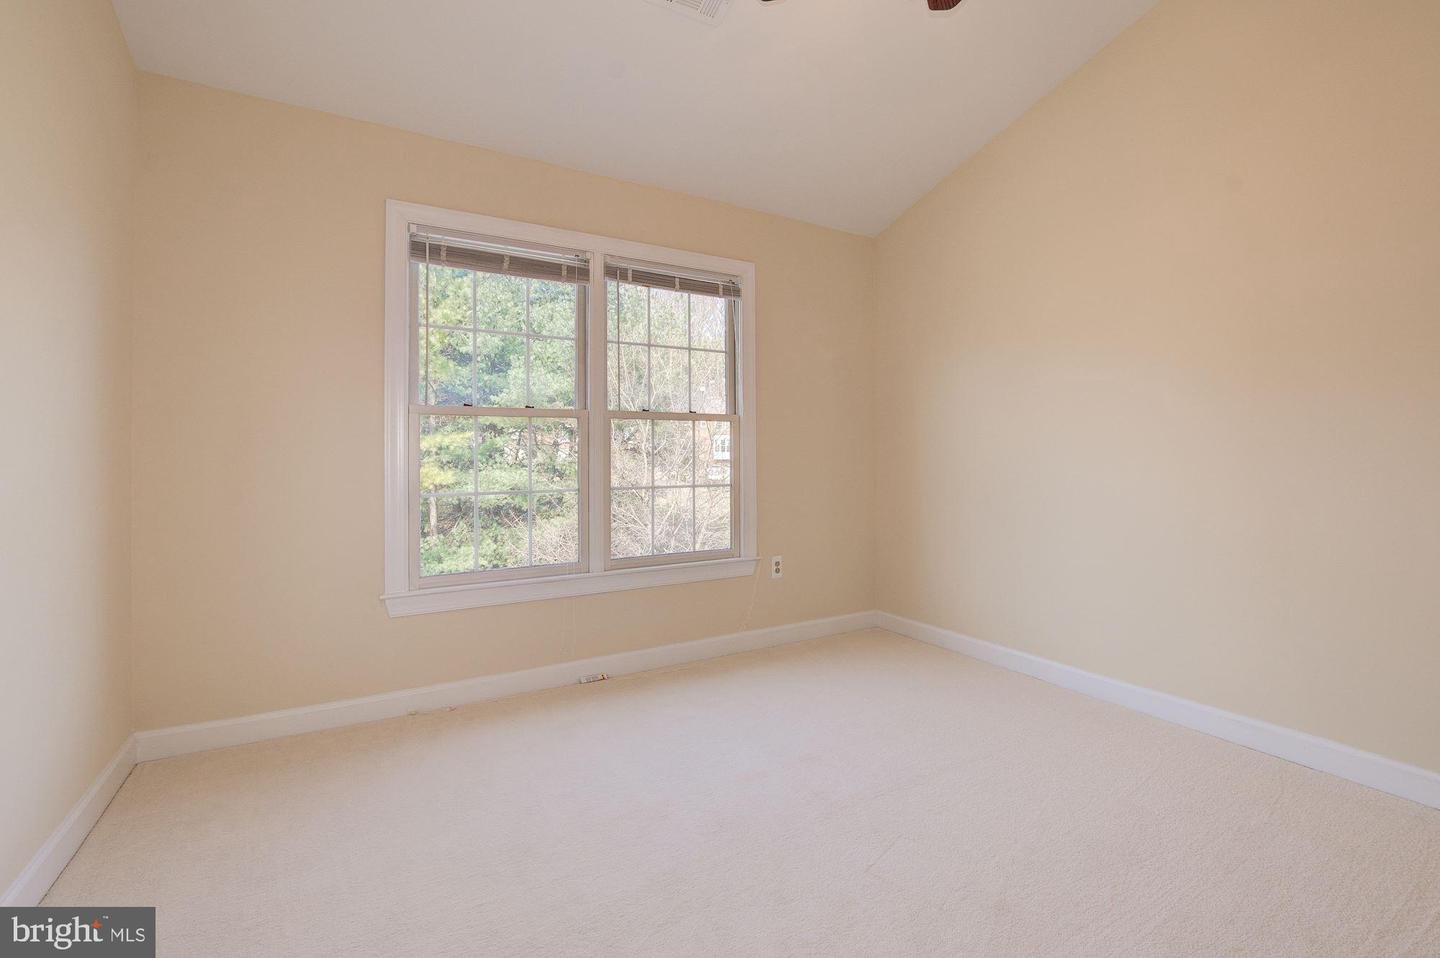 Additional photo for property listing at 6 Crofton Hill Ct Rockville, Maryland 20850 United States